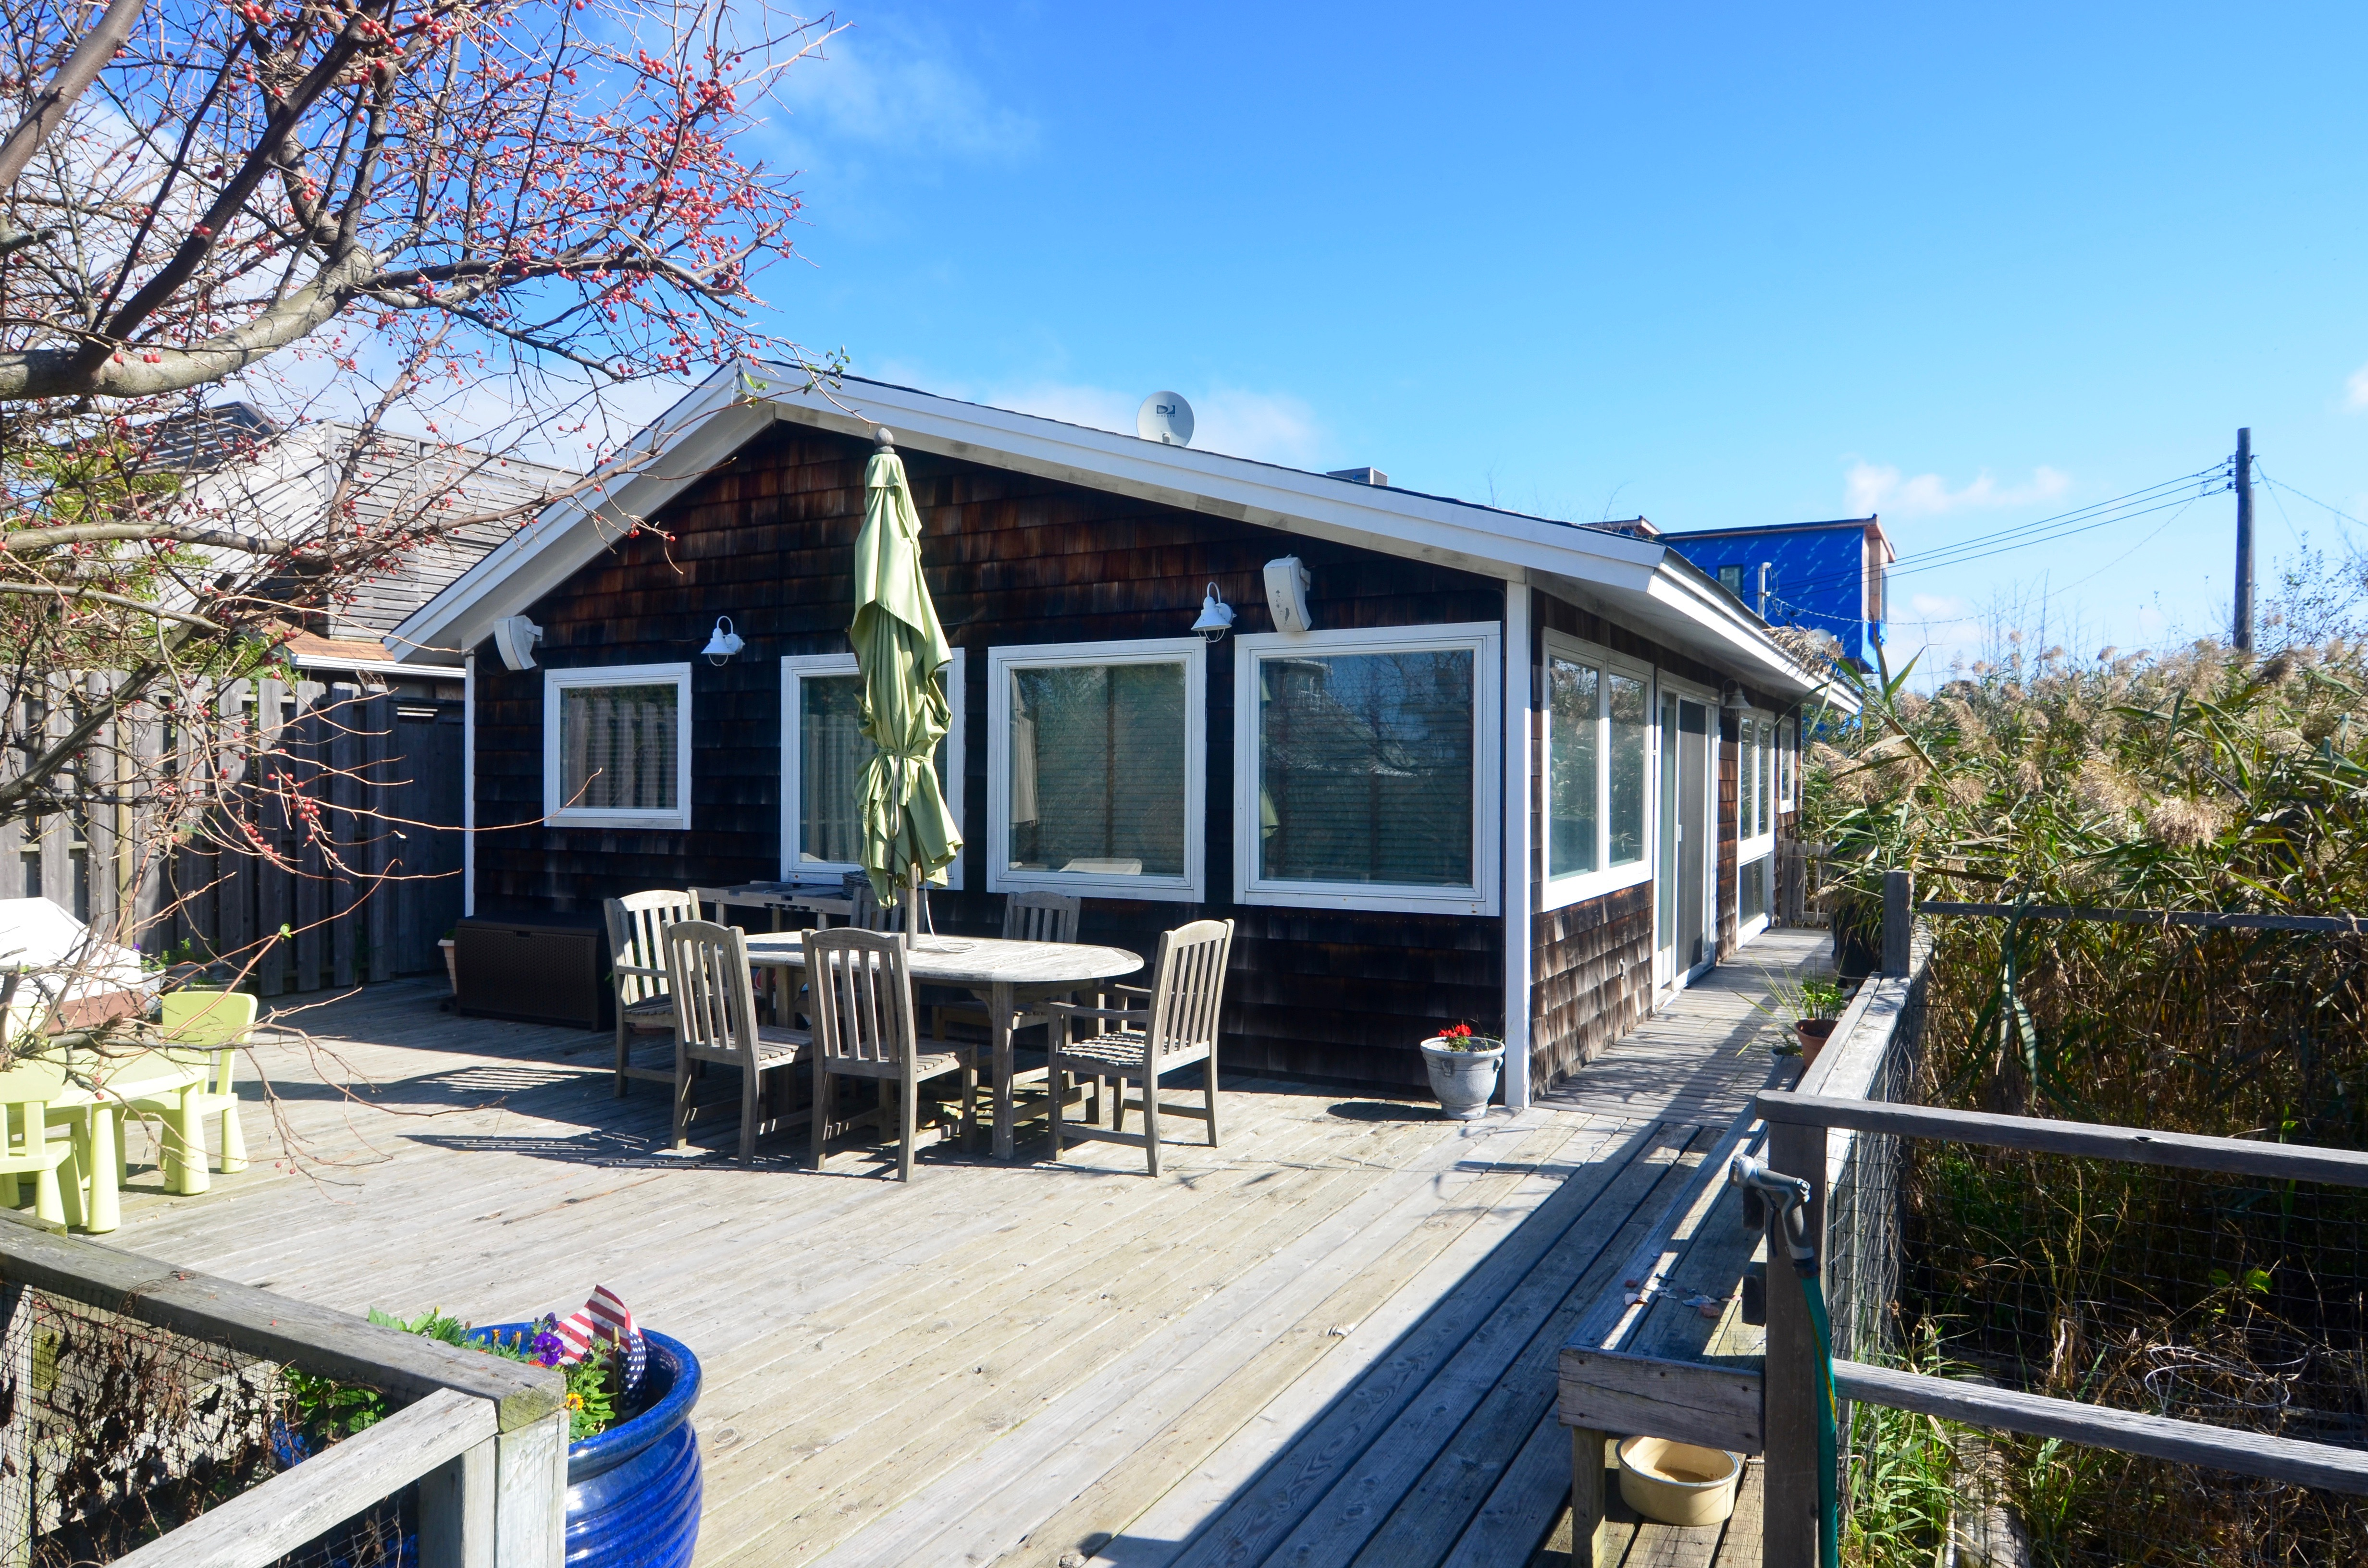 This 3 bedroom, 1.5 bathroom home has it all! Great location near the Seaview border. Sunny west facing deck. Designer kitchen with Miele and Subzero appliances. Open layout great for family gatherings. Both bathrooms are nicely renovated.  Available for 2 week increments. <br> <br> <br> July - 2 weeks $11,000, monthly $21,000 <br> August pricing available upon request.